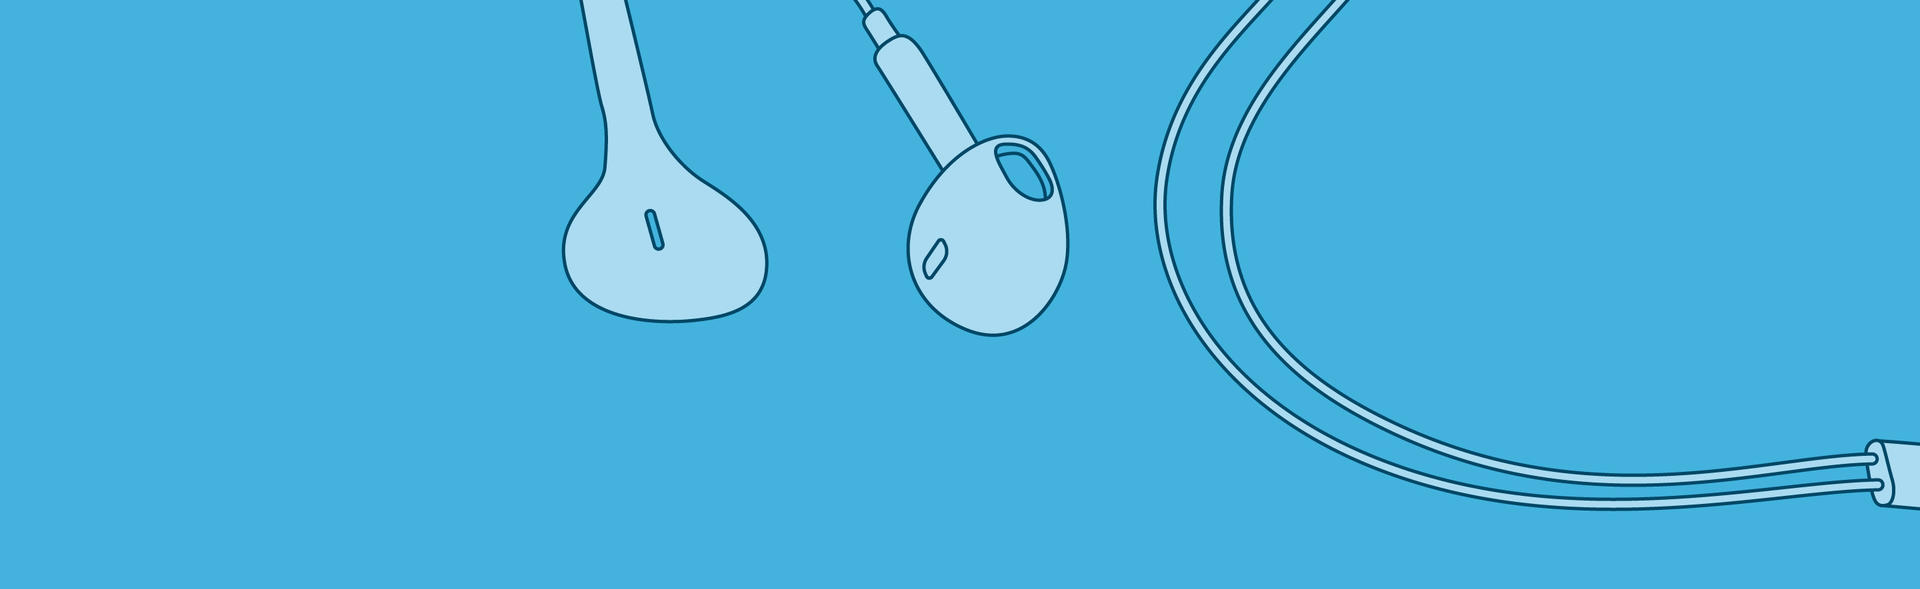 Illustrated ear buds.